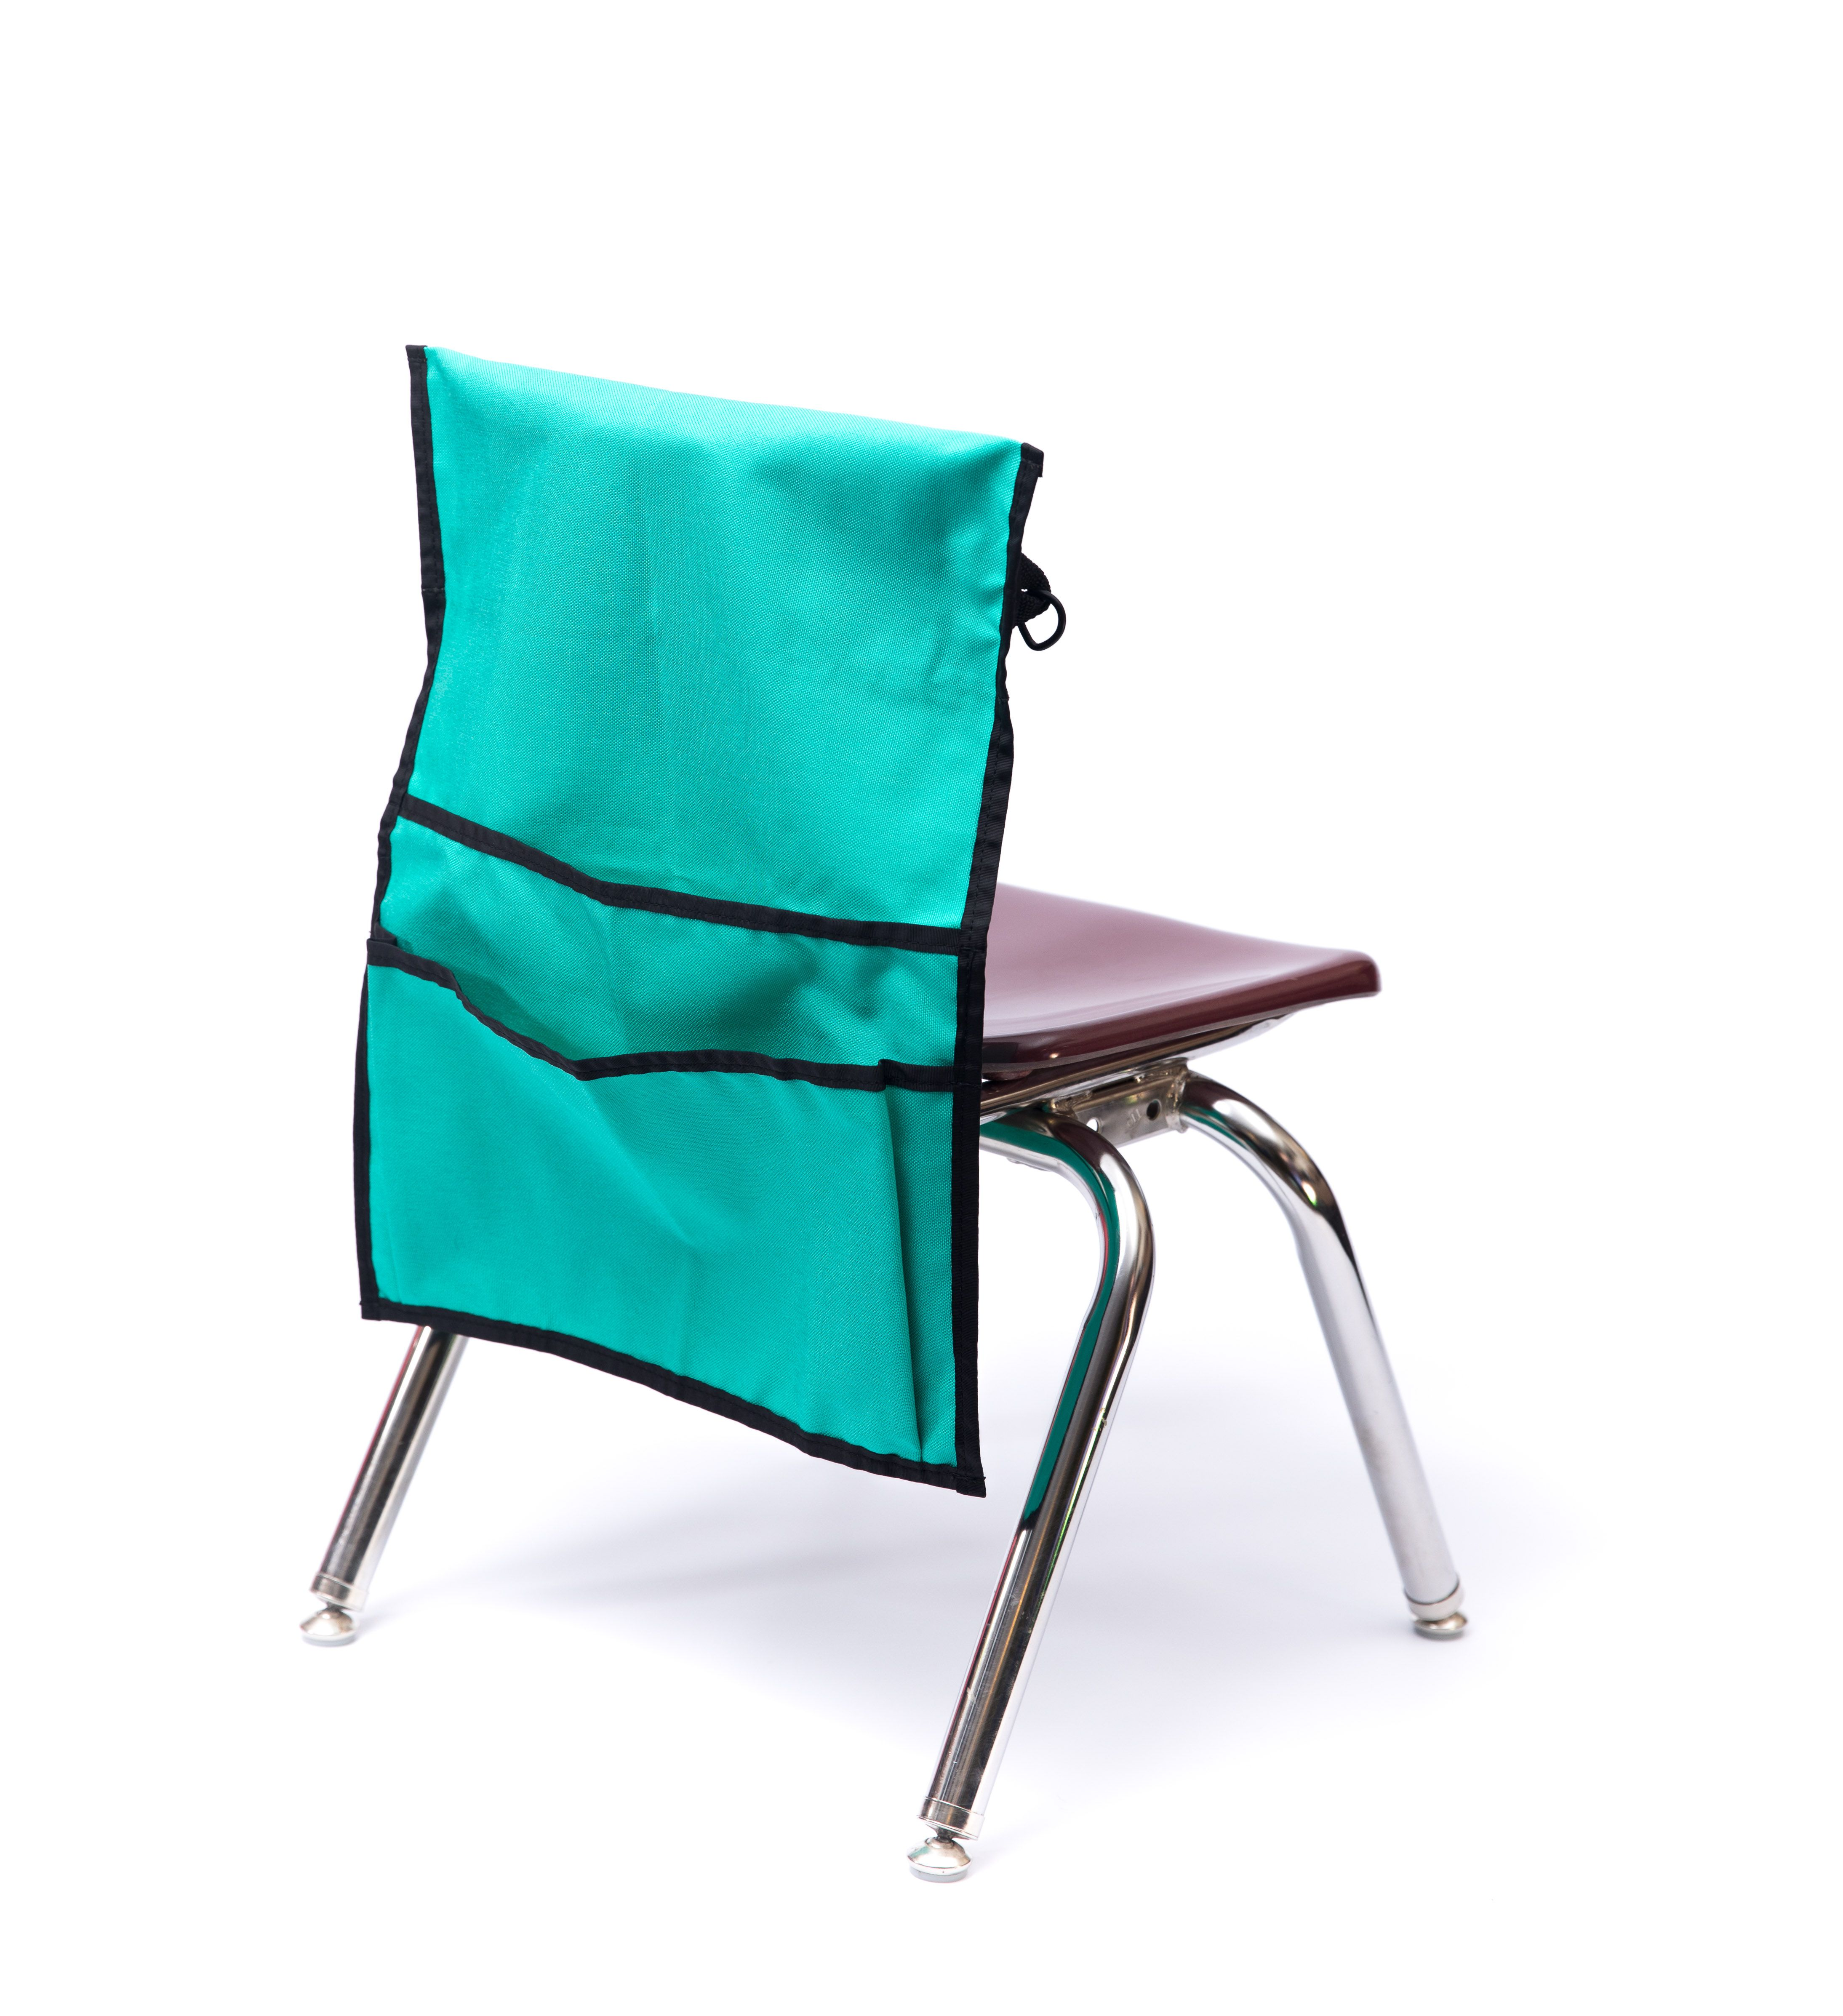 Double Chair Pocket Double Chair Pockets help students organize